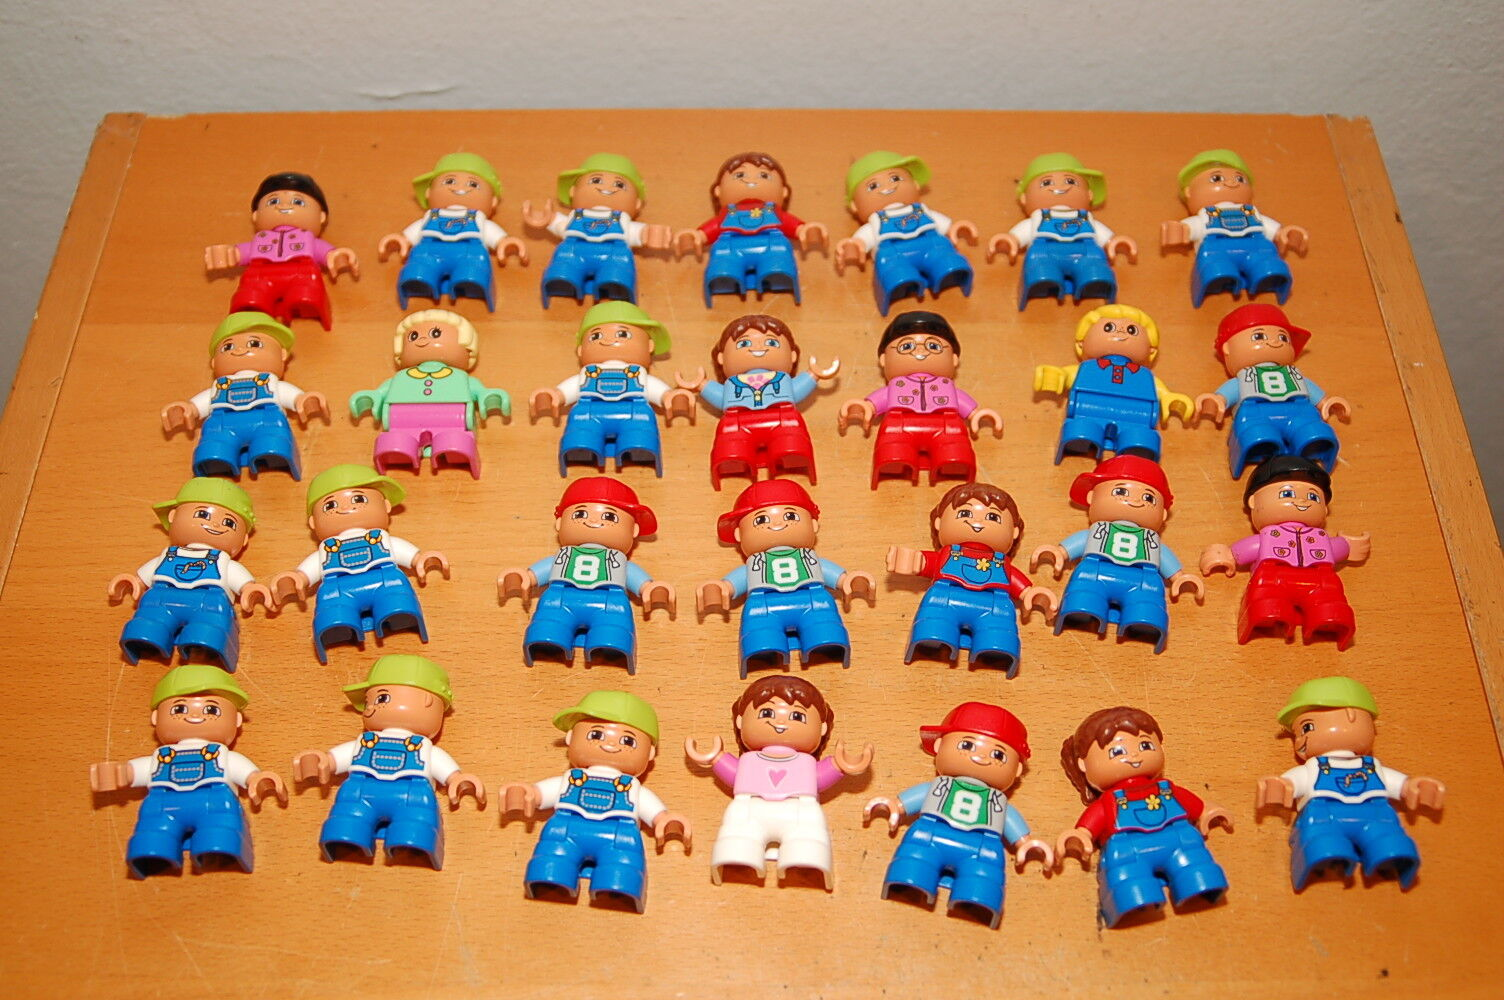 Lot of 28 Lego Duplo Toddlers Kids Girls & Boys Baby Figures